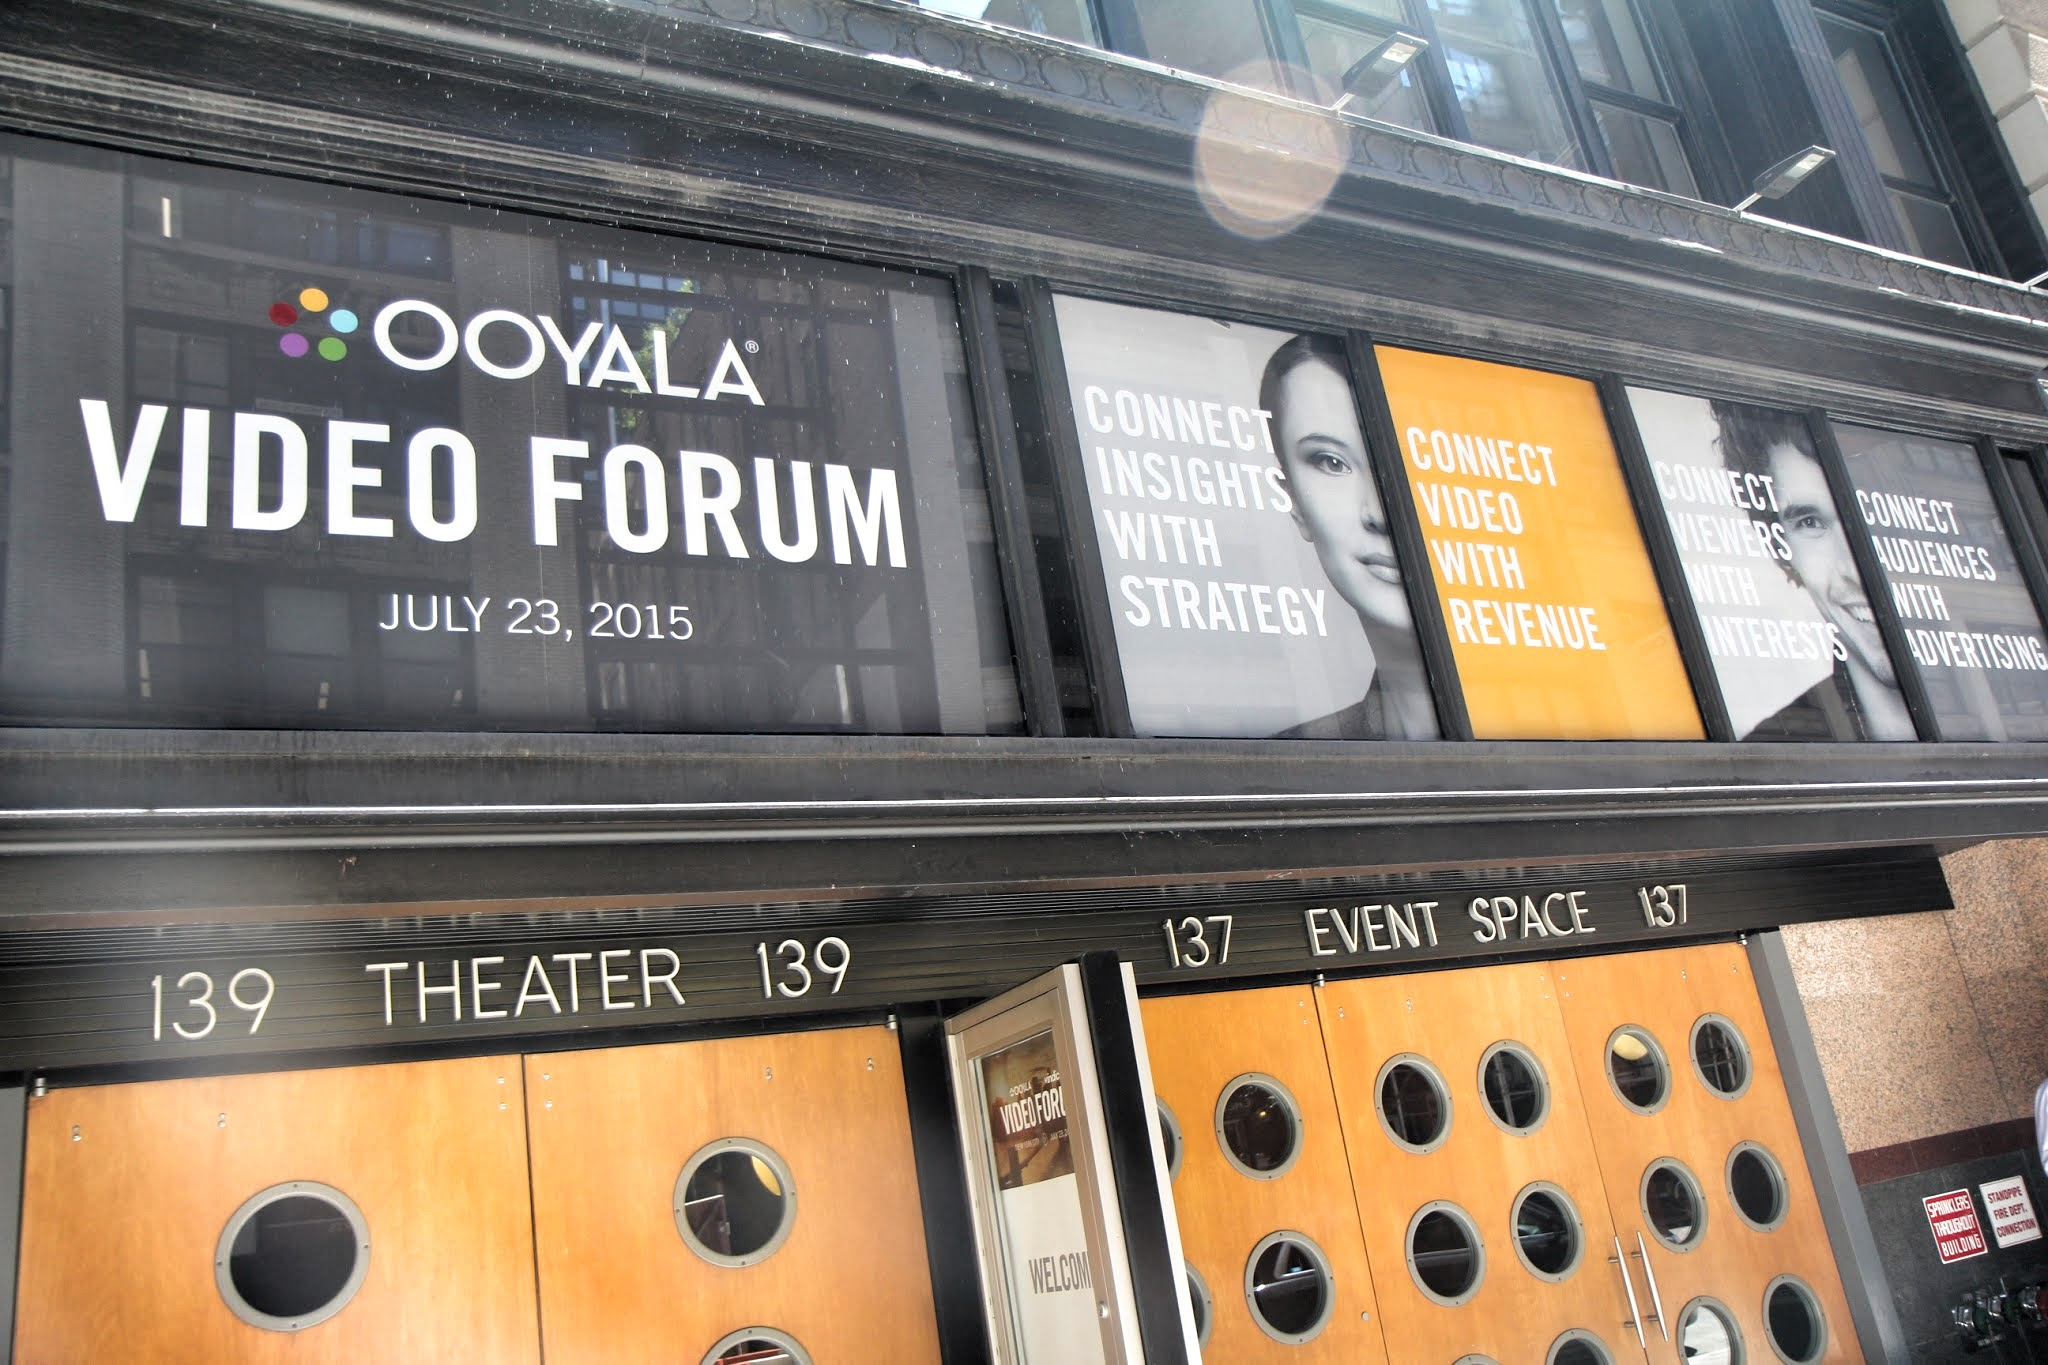 Ooyala's signage greeted visitors as they arrived for presentations in the HELEN MILLS Event Space.